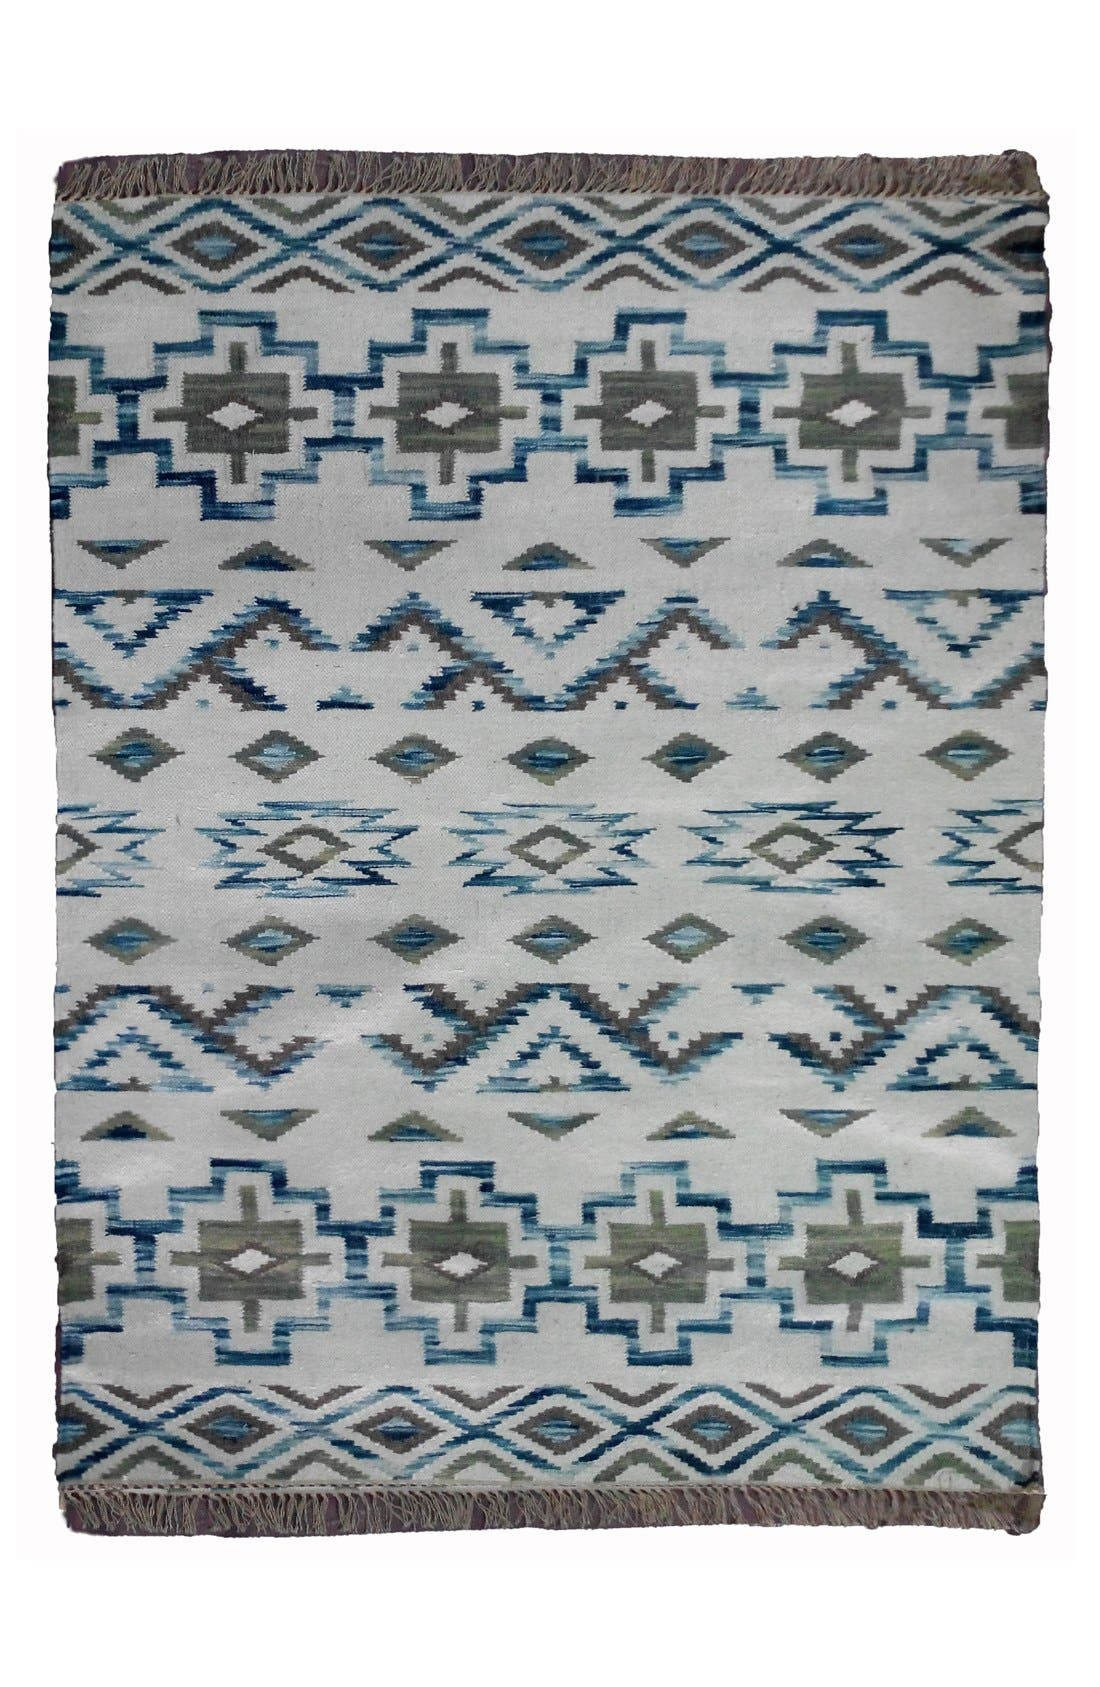 AM HOME TEXTILES Geometric Handwoven Wool Rug